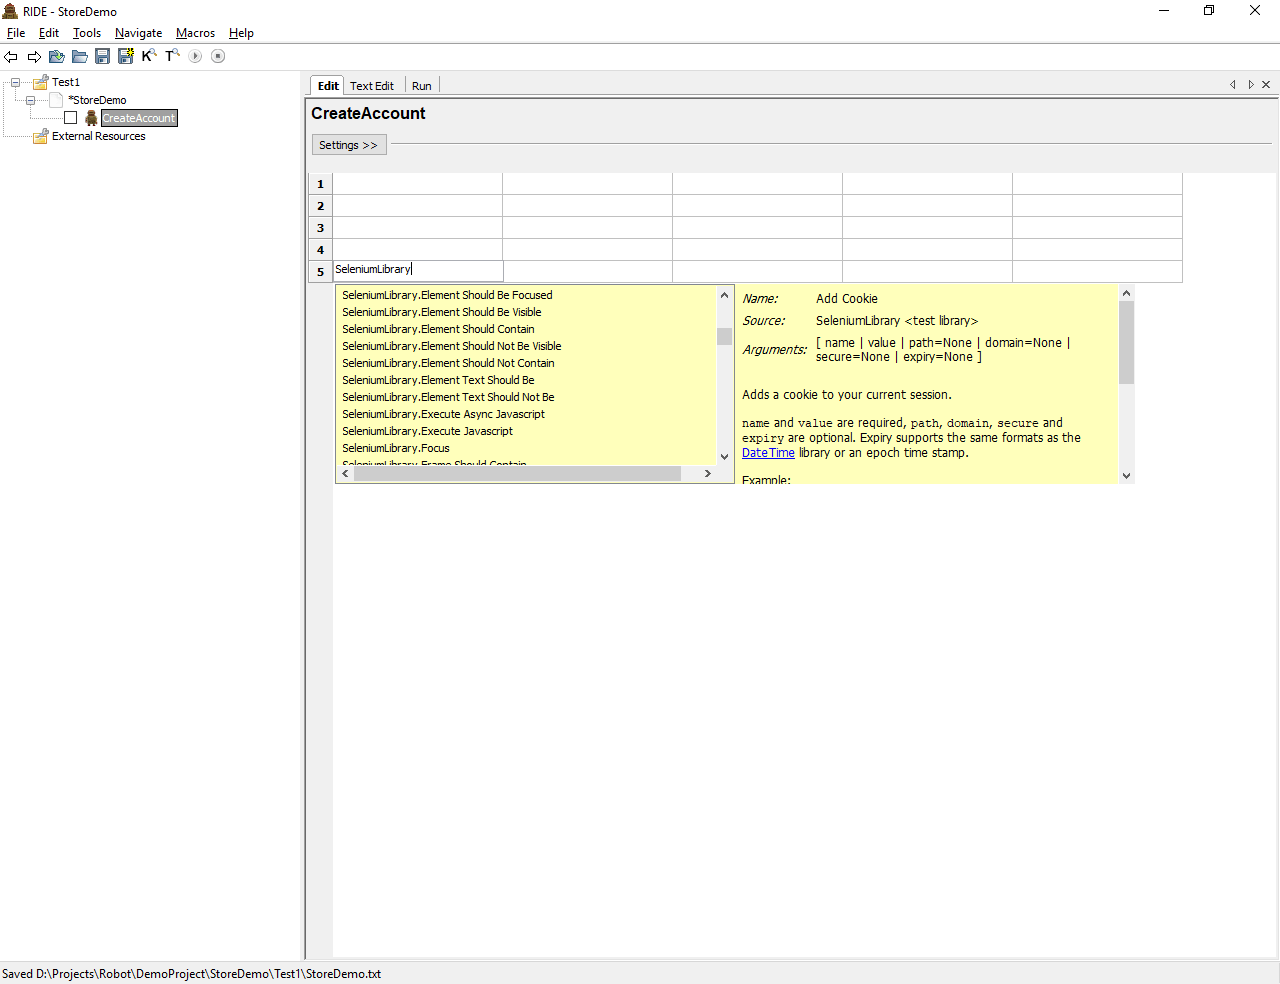 An empty test case showing the available keywords from the imported SeleniumLibrary